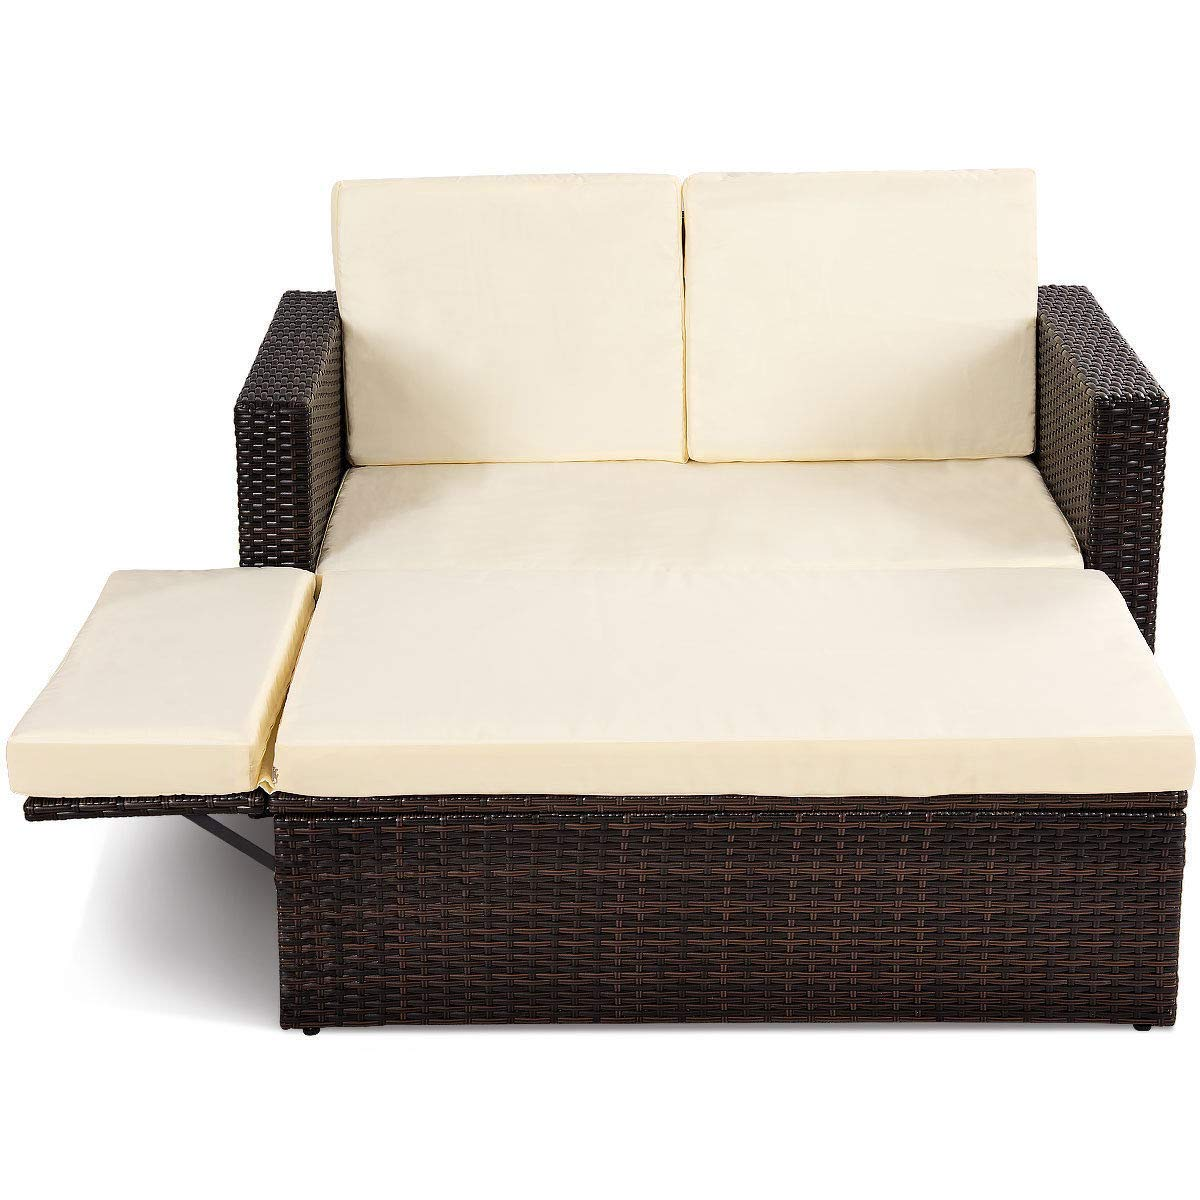 KCHEX>>2PCS Patio Rattan Loveseat Sofa Ottoman Daybed Garden Furniture Set W/Cushions>>This is Our loveseat Rattan Lounge Chair which is The Focal Point of Your Garden or Patio